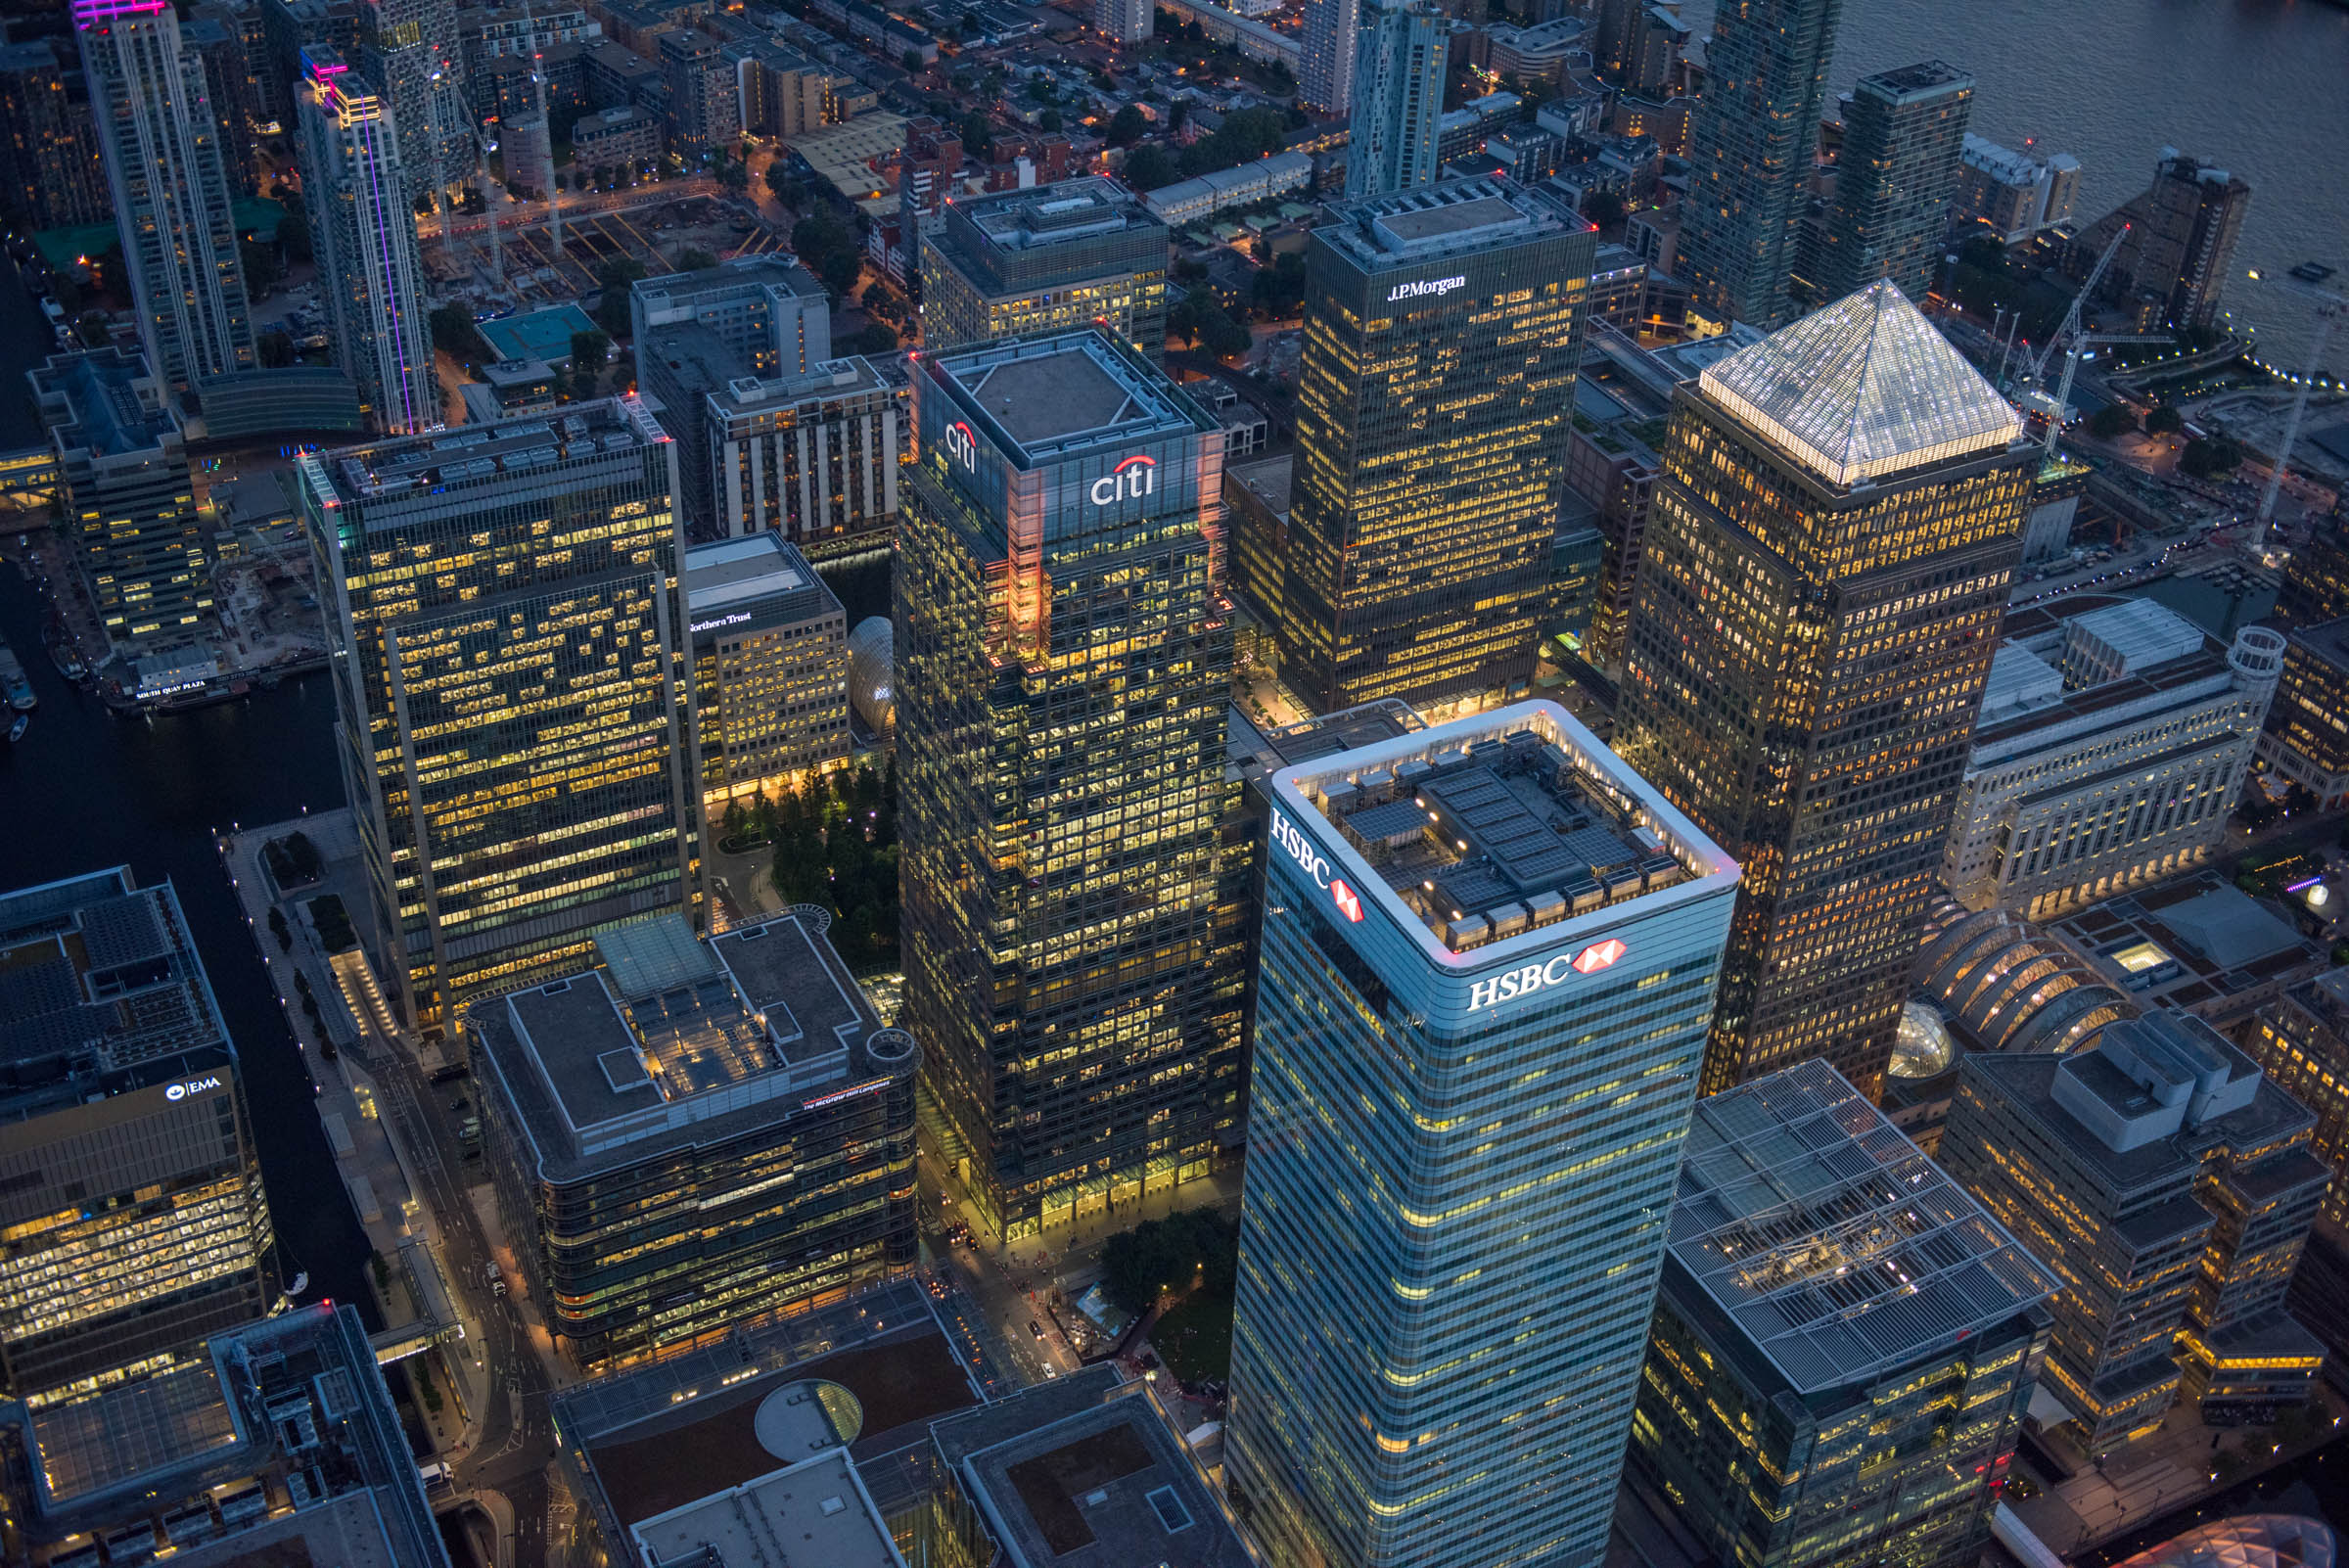 2500ft over HSBC, Canary Wharf at night., Citi and Canada Towers. Date : September 2016